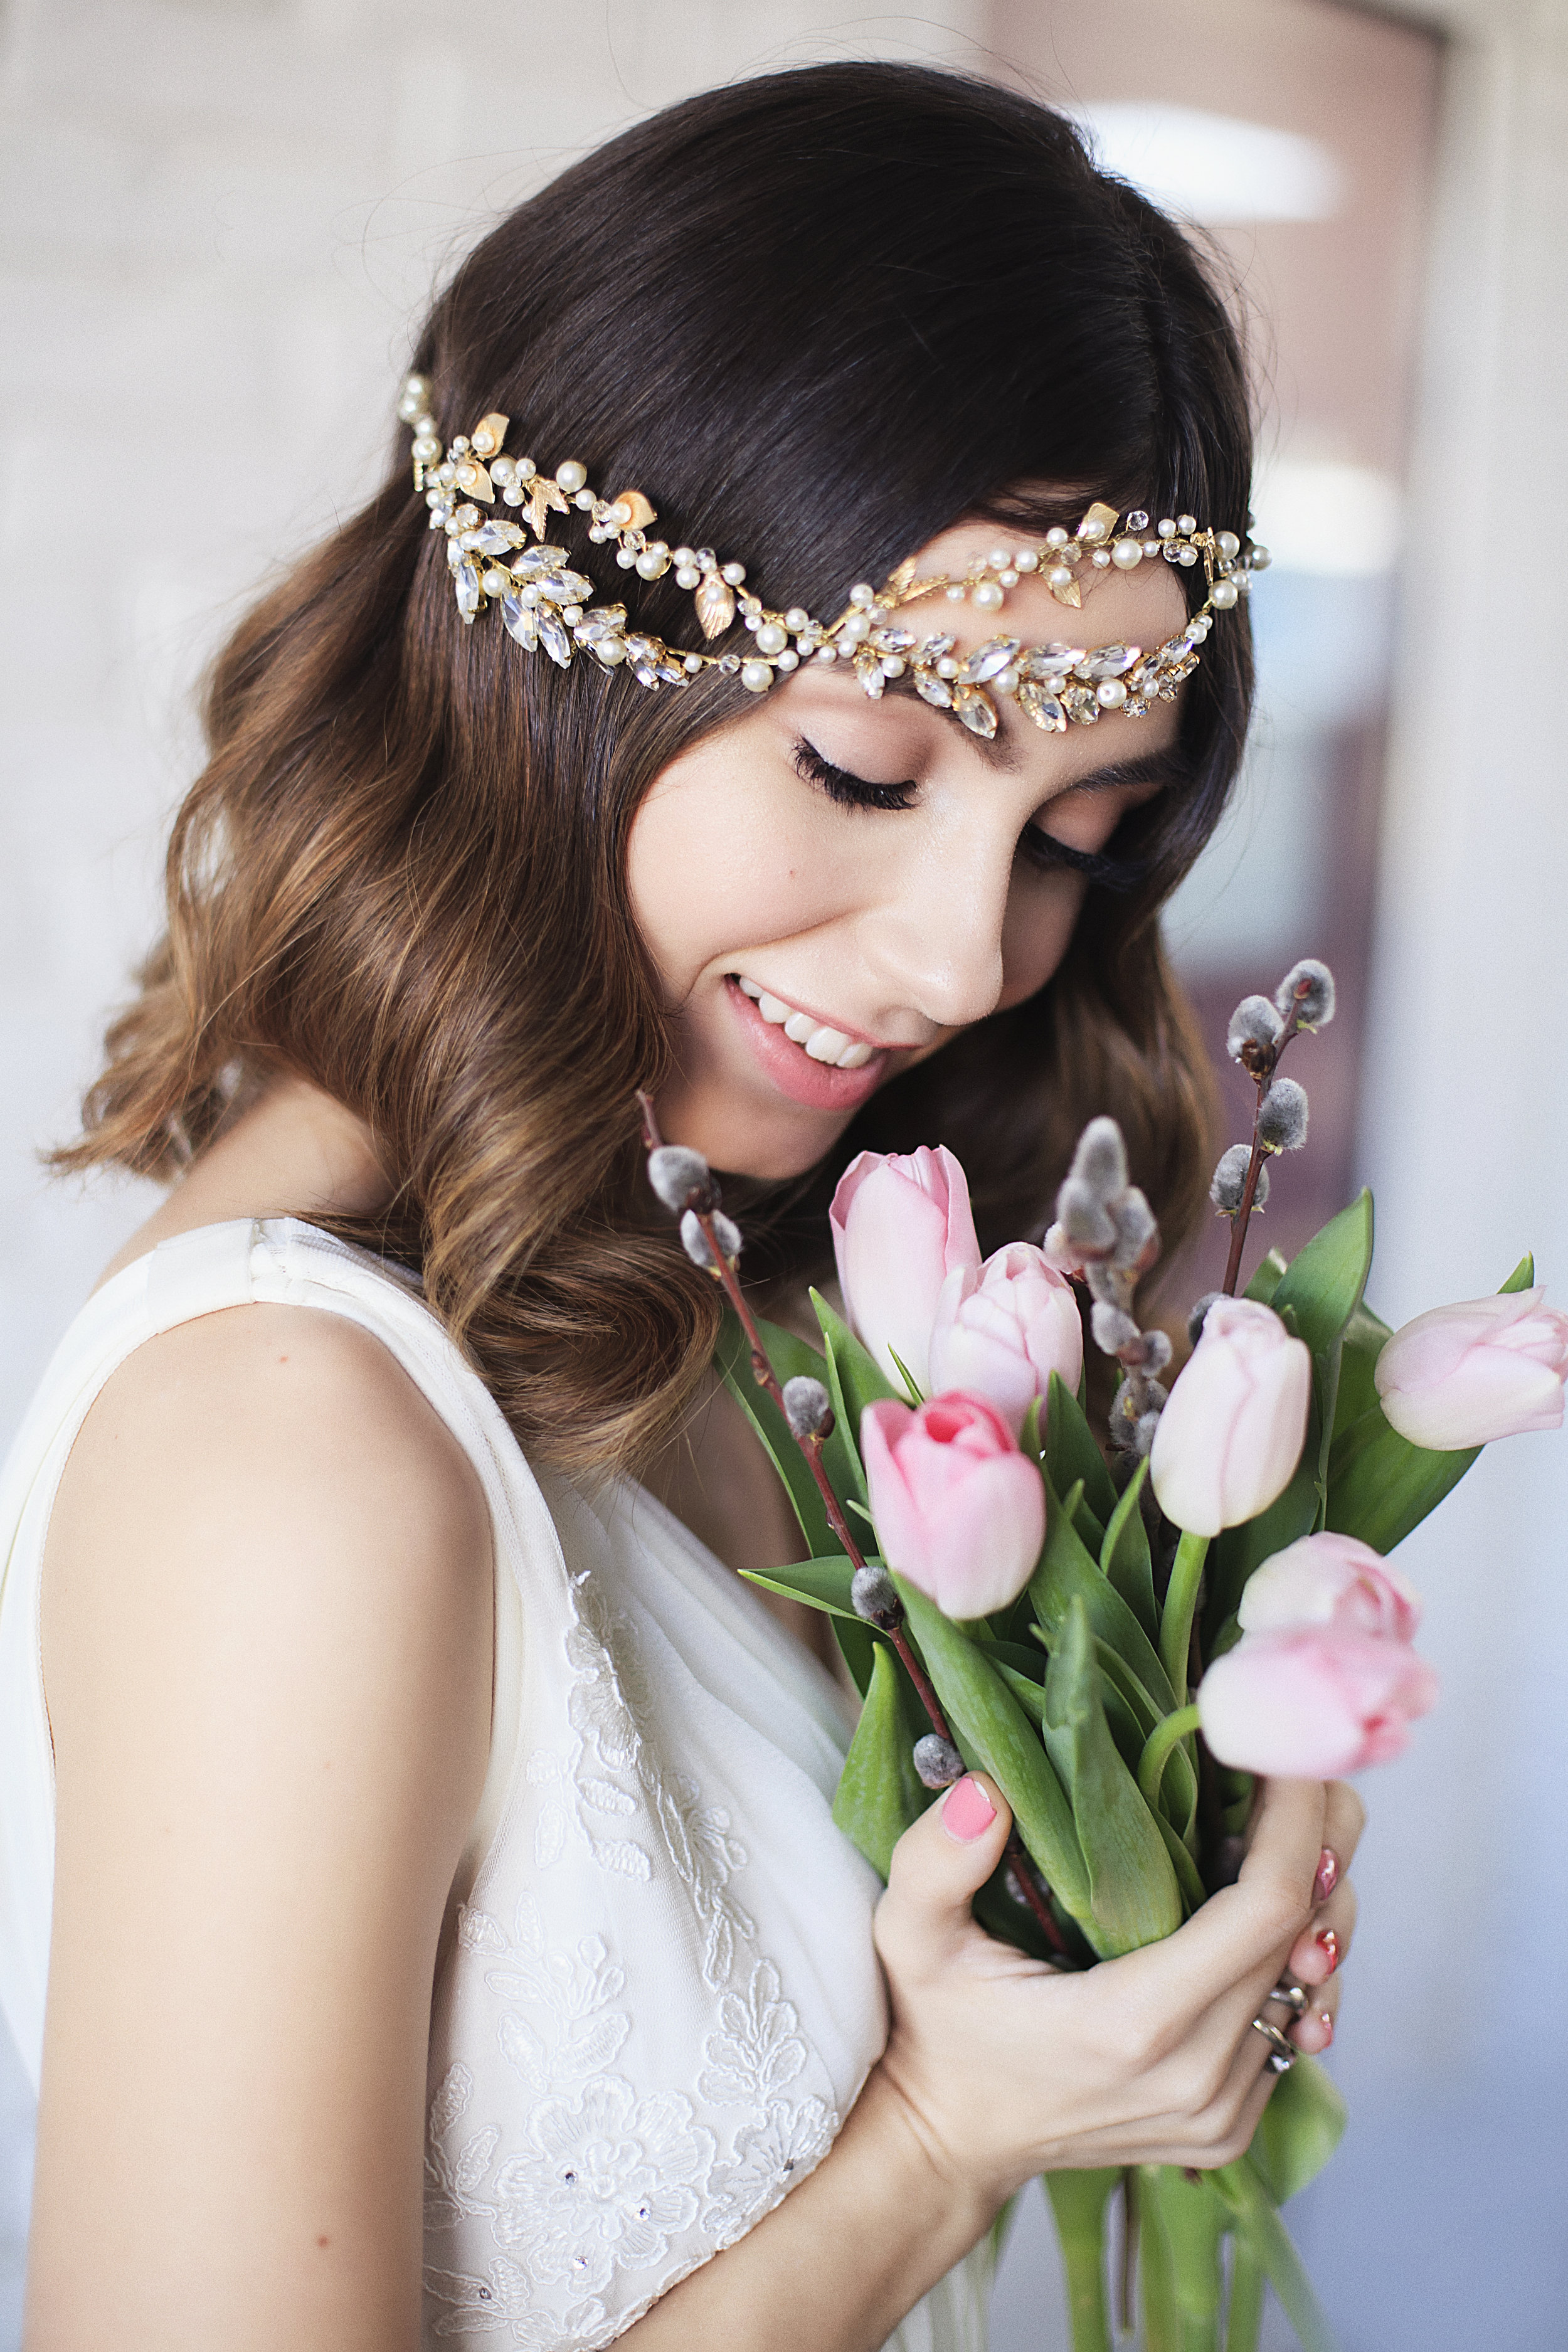 Find your perfect Bridal Vintage Headband - Handmade in SwitzerlandUnique DesignPossibility to Rush OrdersFree Shipping WorldwideCustomisable OrdersFast response on your questions